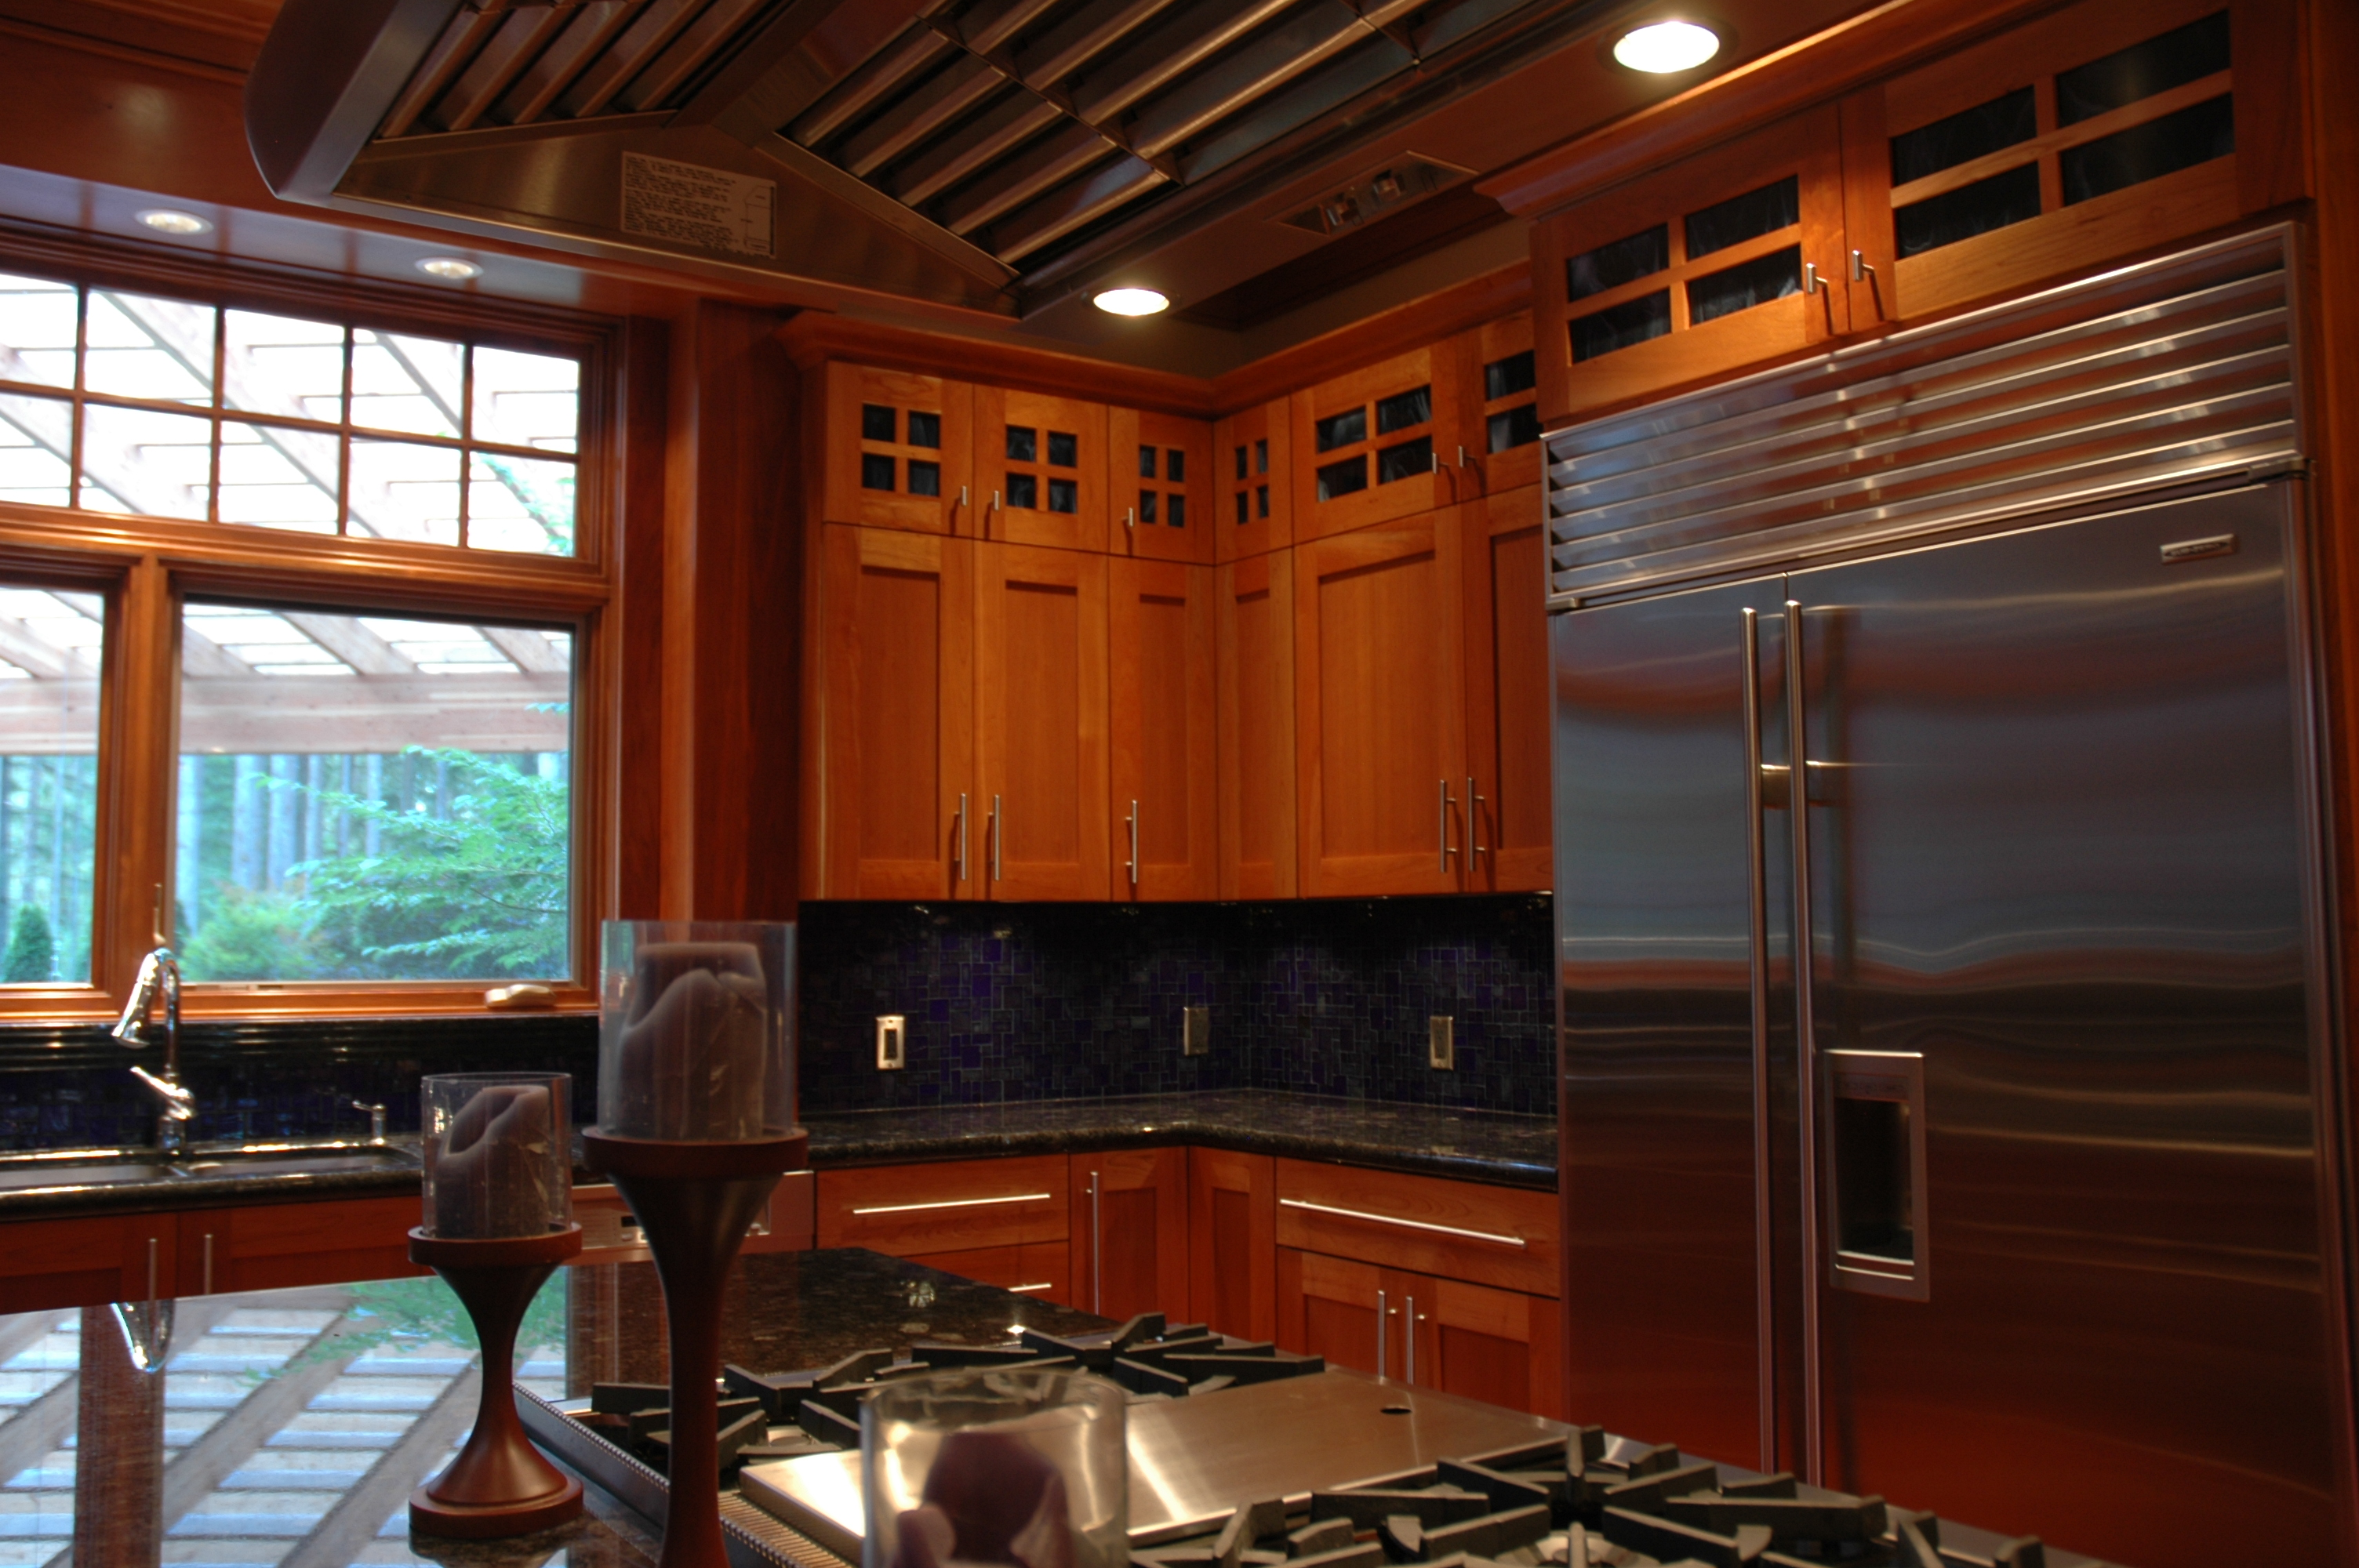 Kitchen View Cabinets with stain glass trim